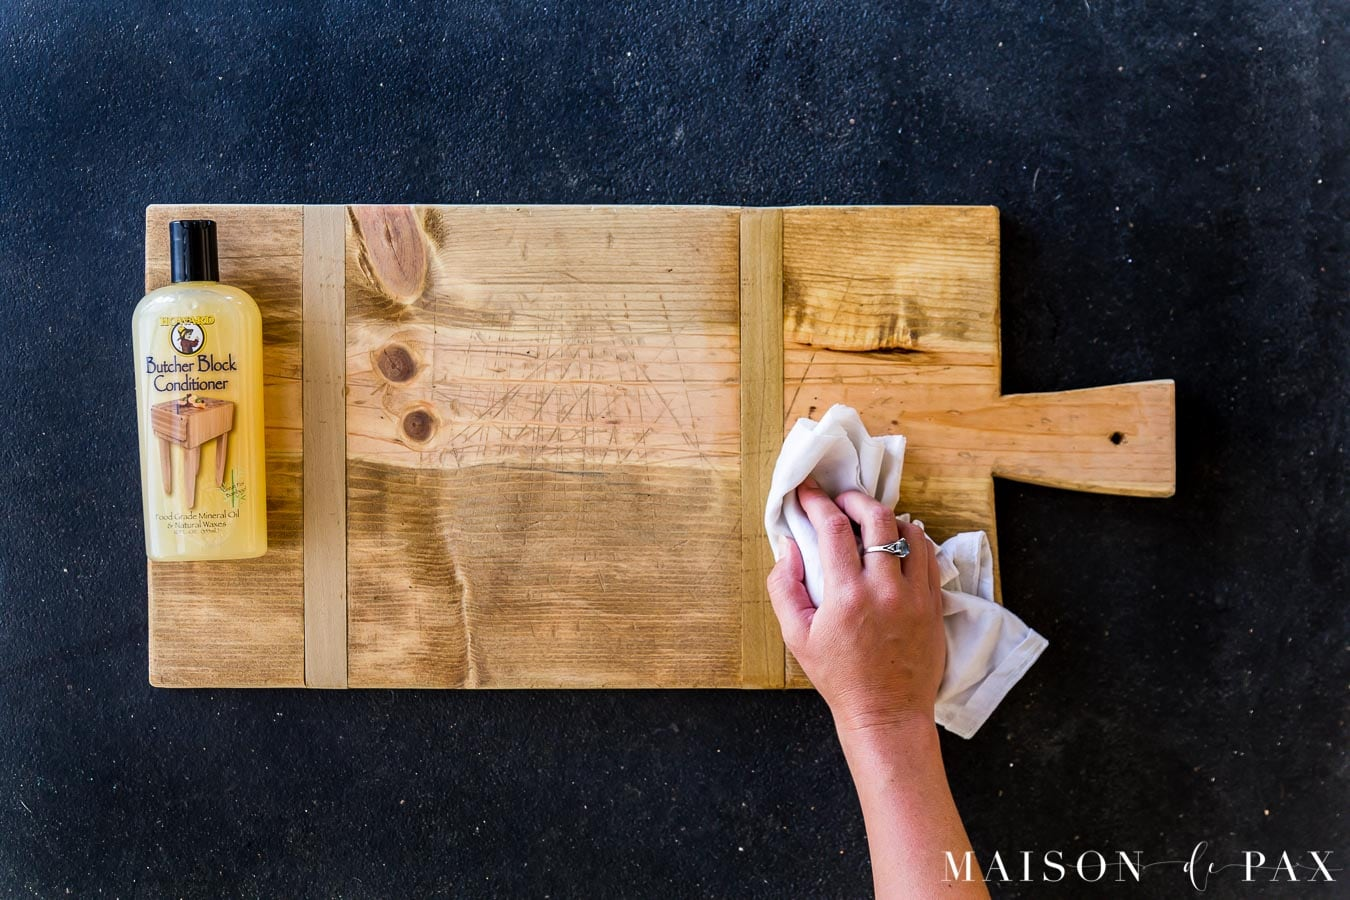 sealing wood serving charcuterie board with butcher block conditioner | Maison de Pax